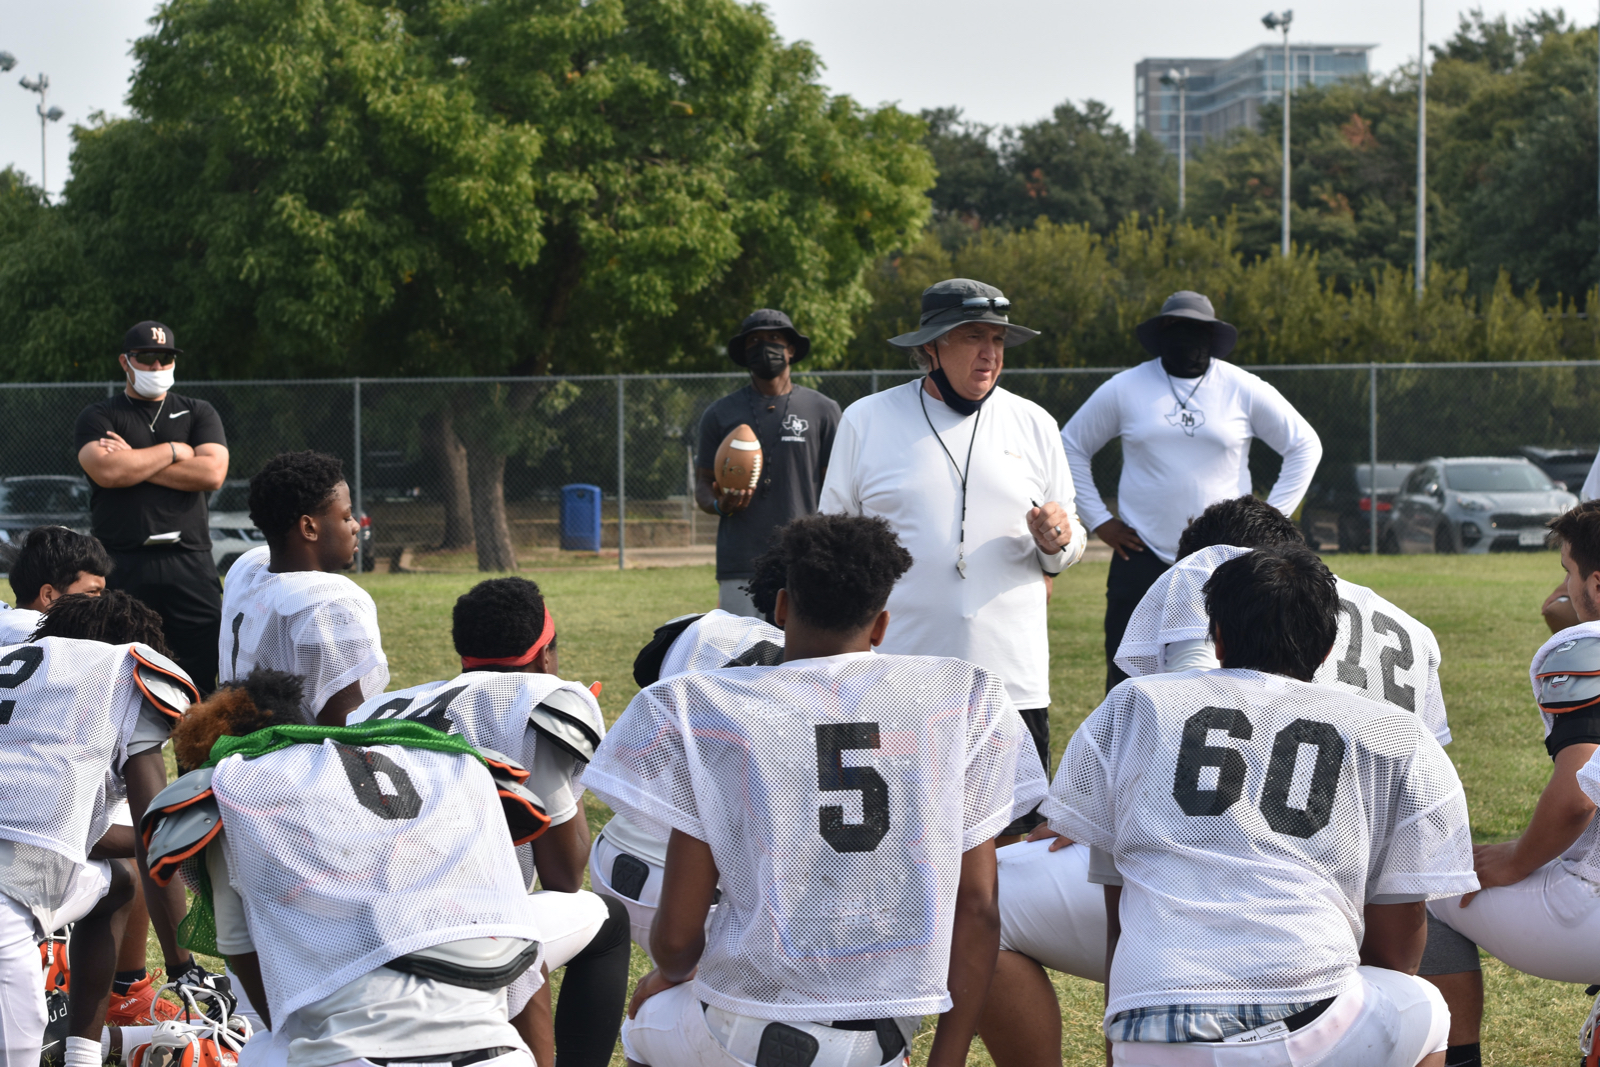 Photo gallery: North Dallas Bulldogs work out in pads — Sept. 19, 2020